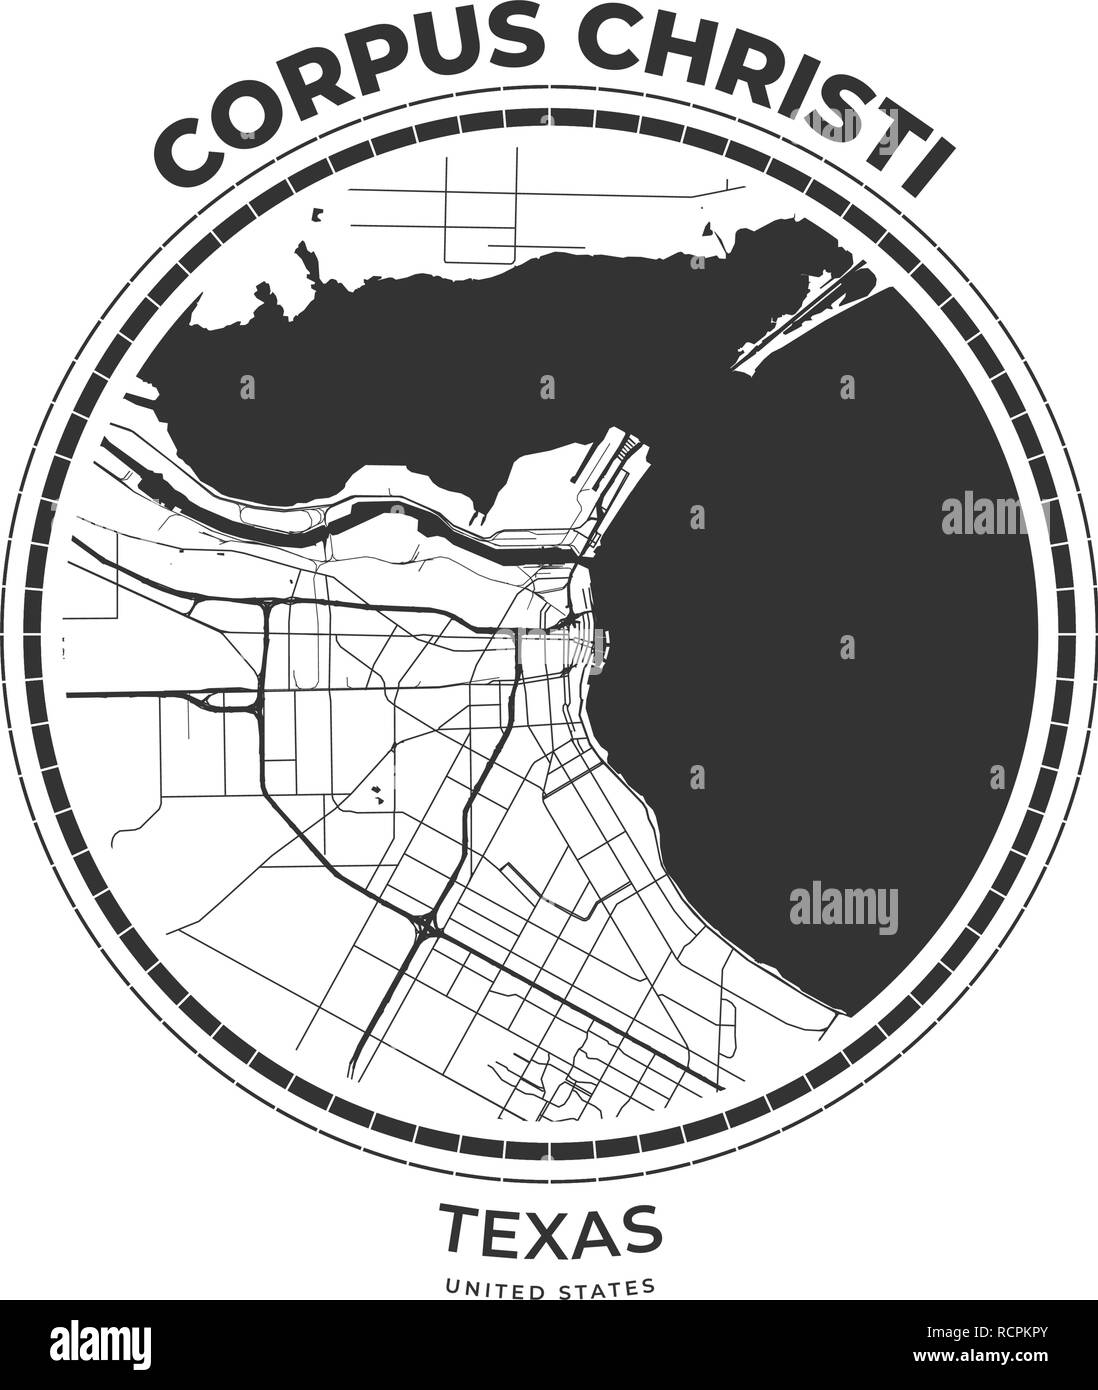 T-shirt map badge of Corpus Christi, Texas. Tee shirt print typography label badge emblem. Vector illustration - Stock Image